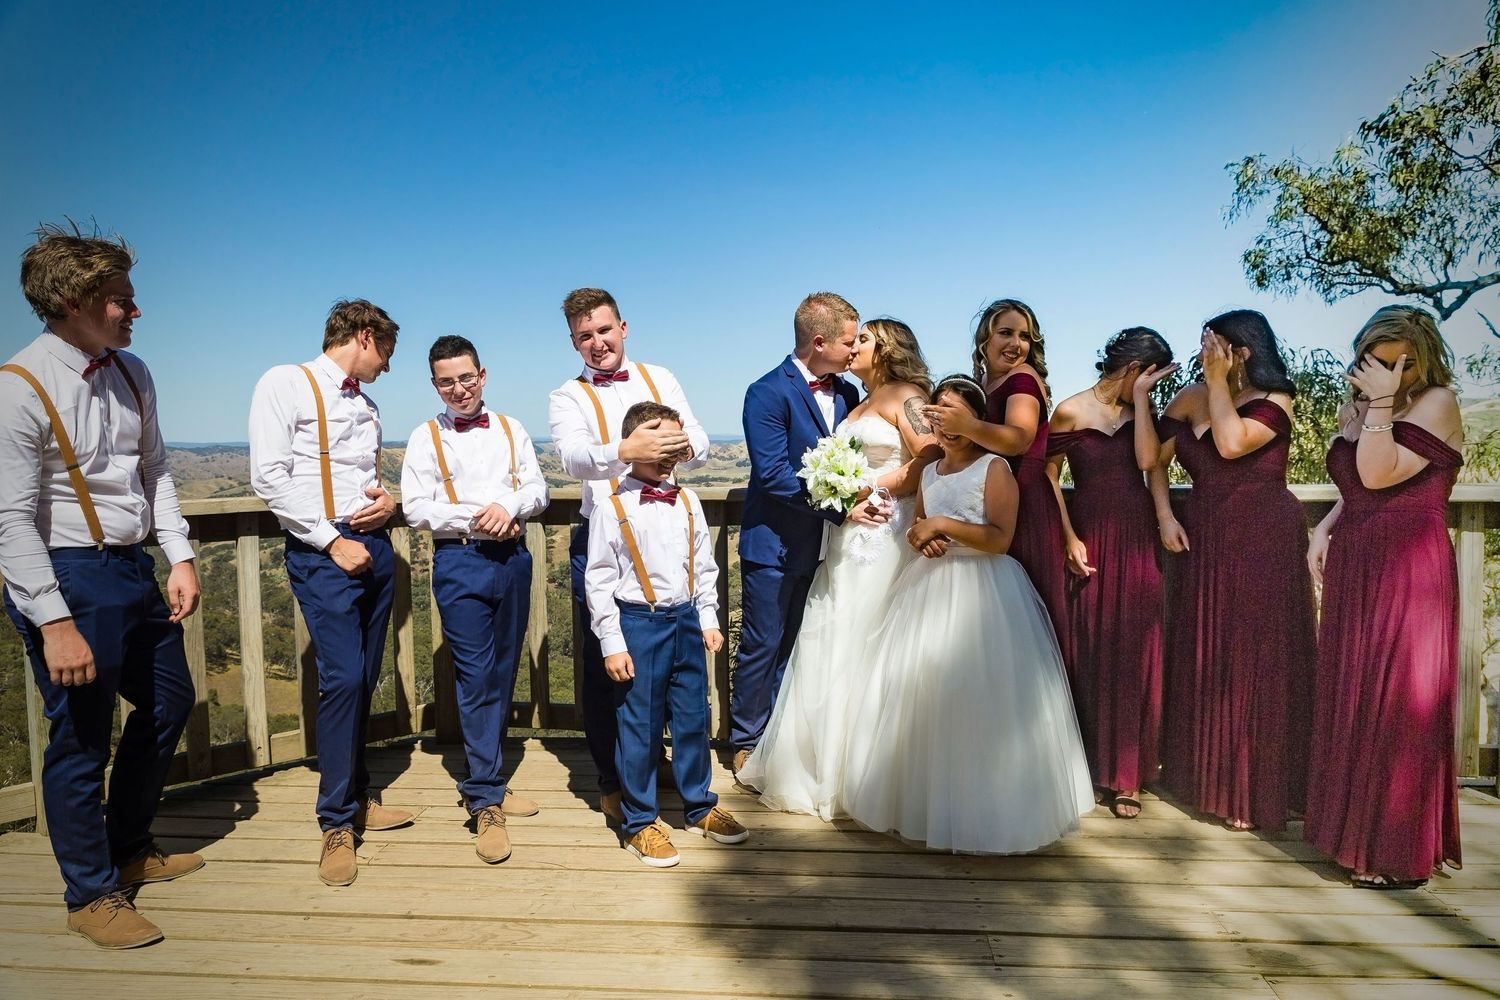 Wedding party country victoria fun wedding photo Intimate wedding photographer